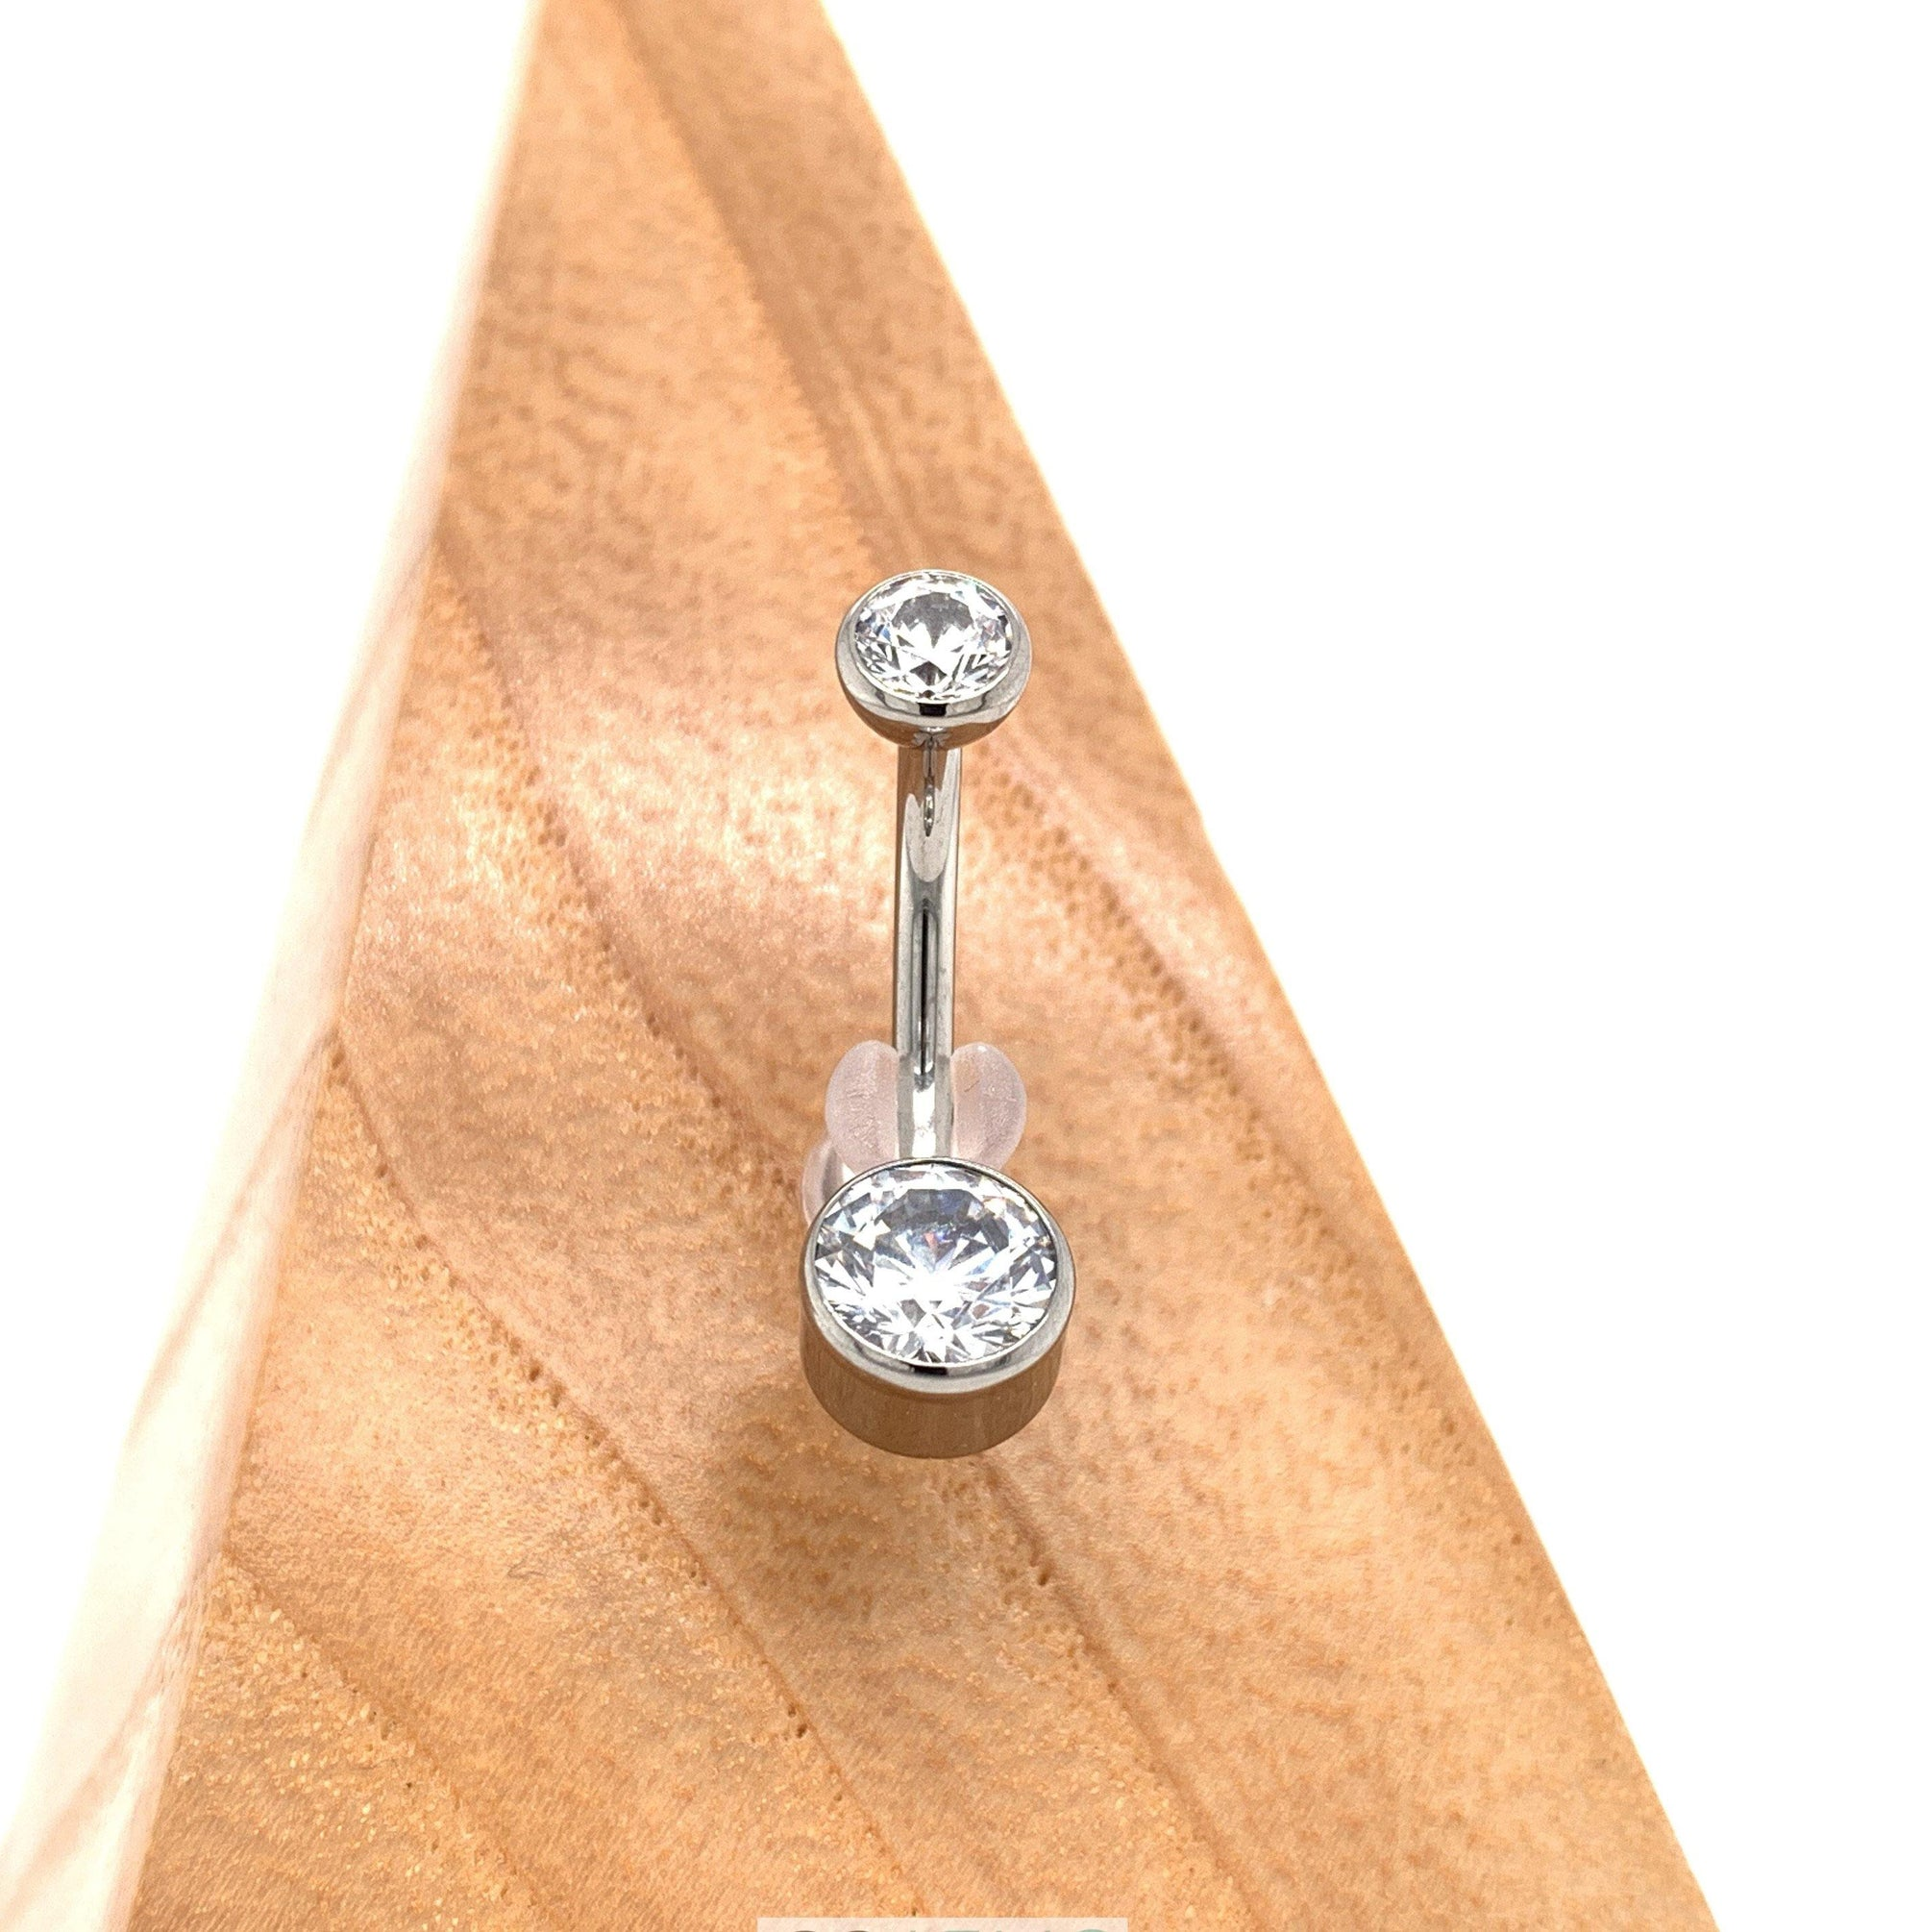 Titanium Bezel Set White Cz Curved Barbell Navel Bars